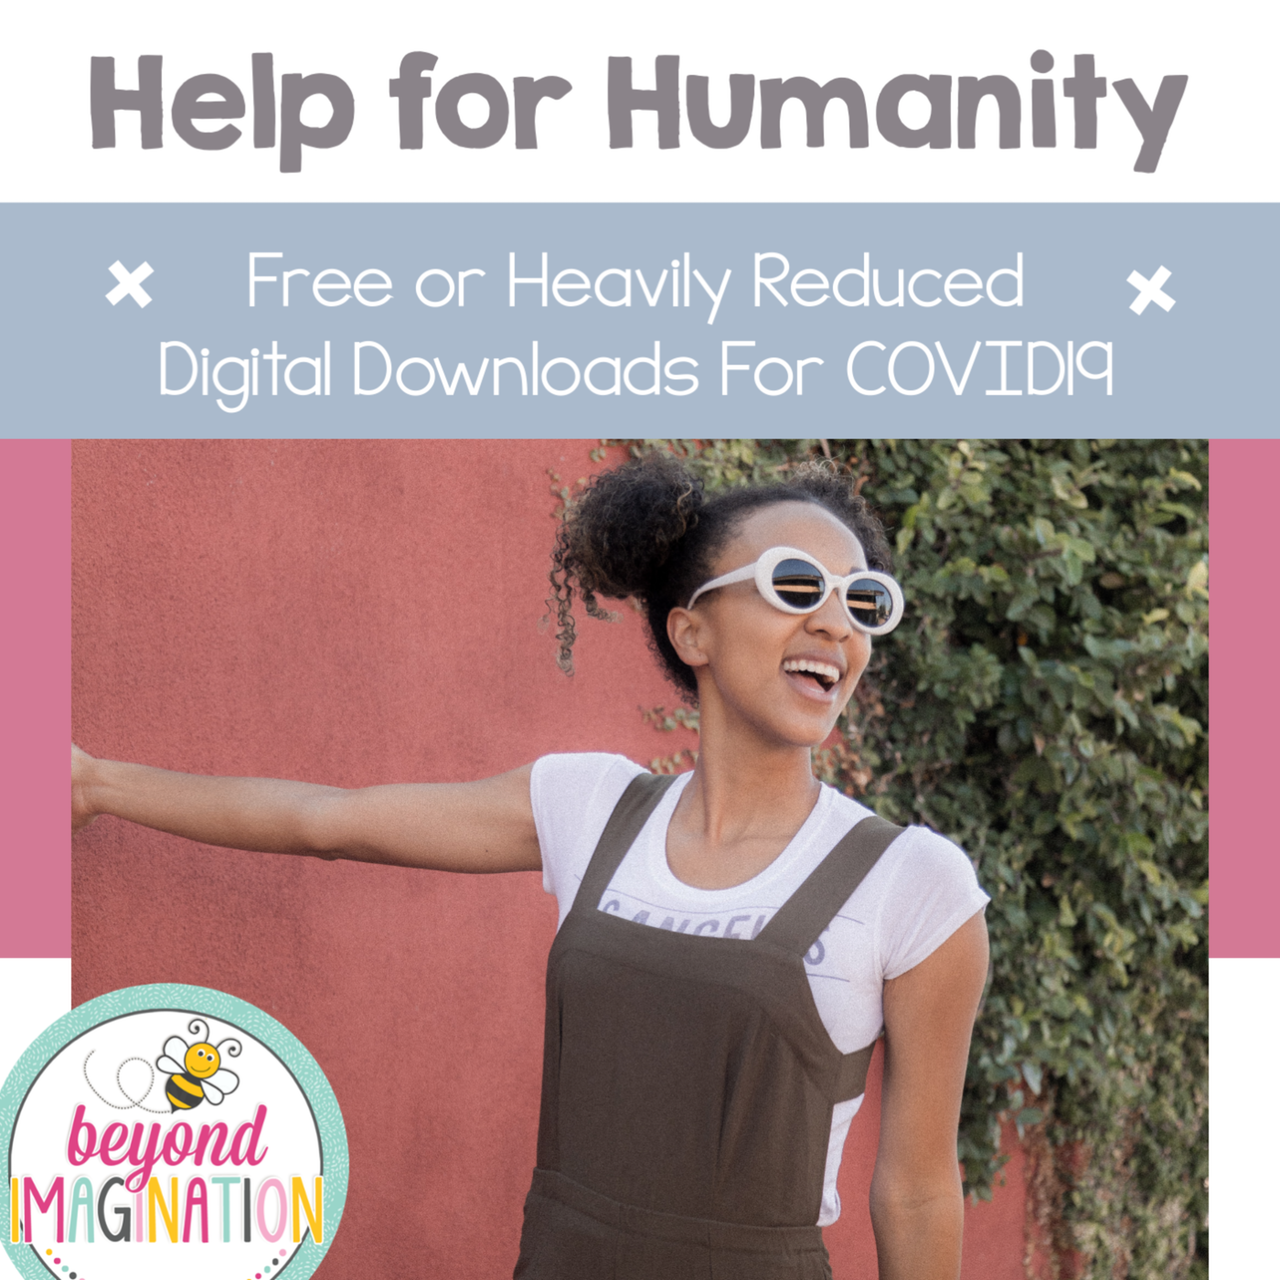 Help for Humanity COVID19